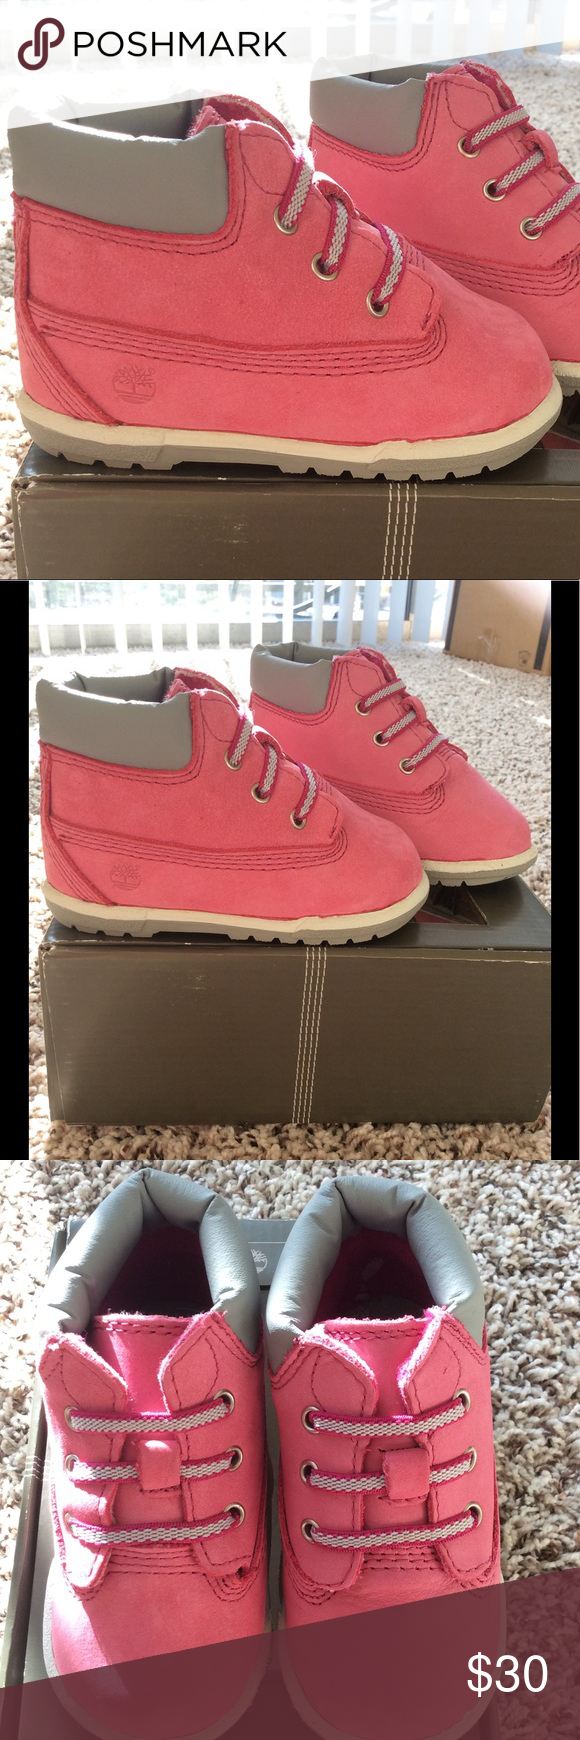 Infant Girl's Timberland Boots Adorable! Fuchsia pink nubuck